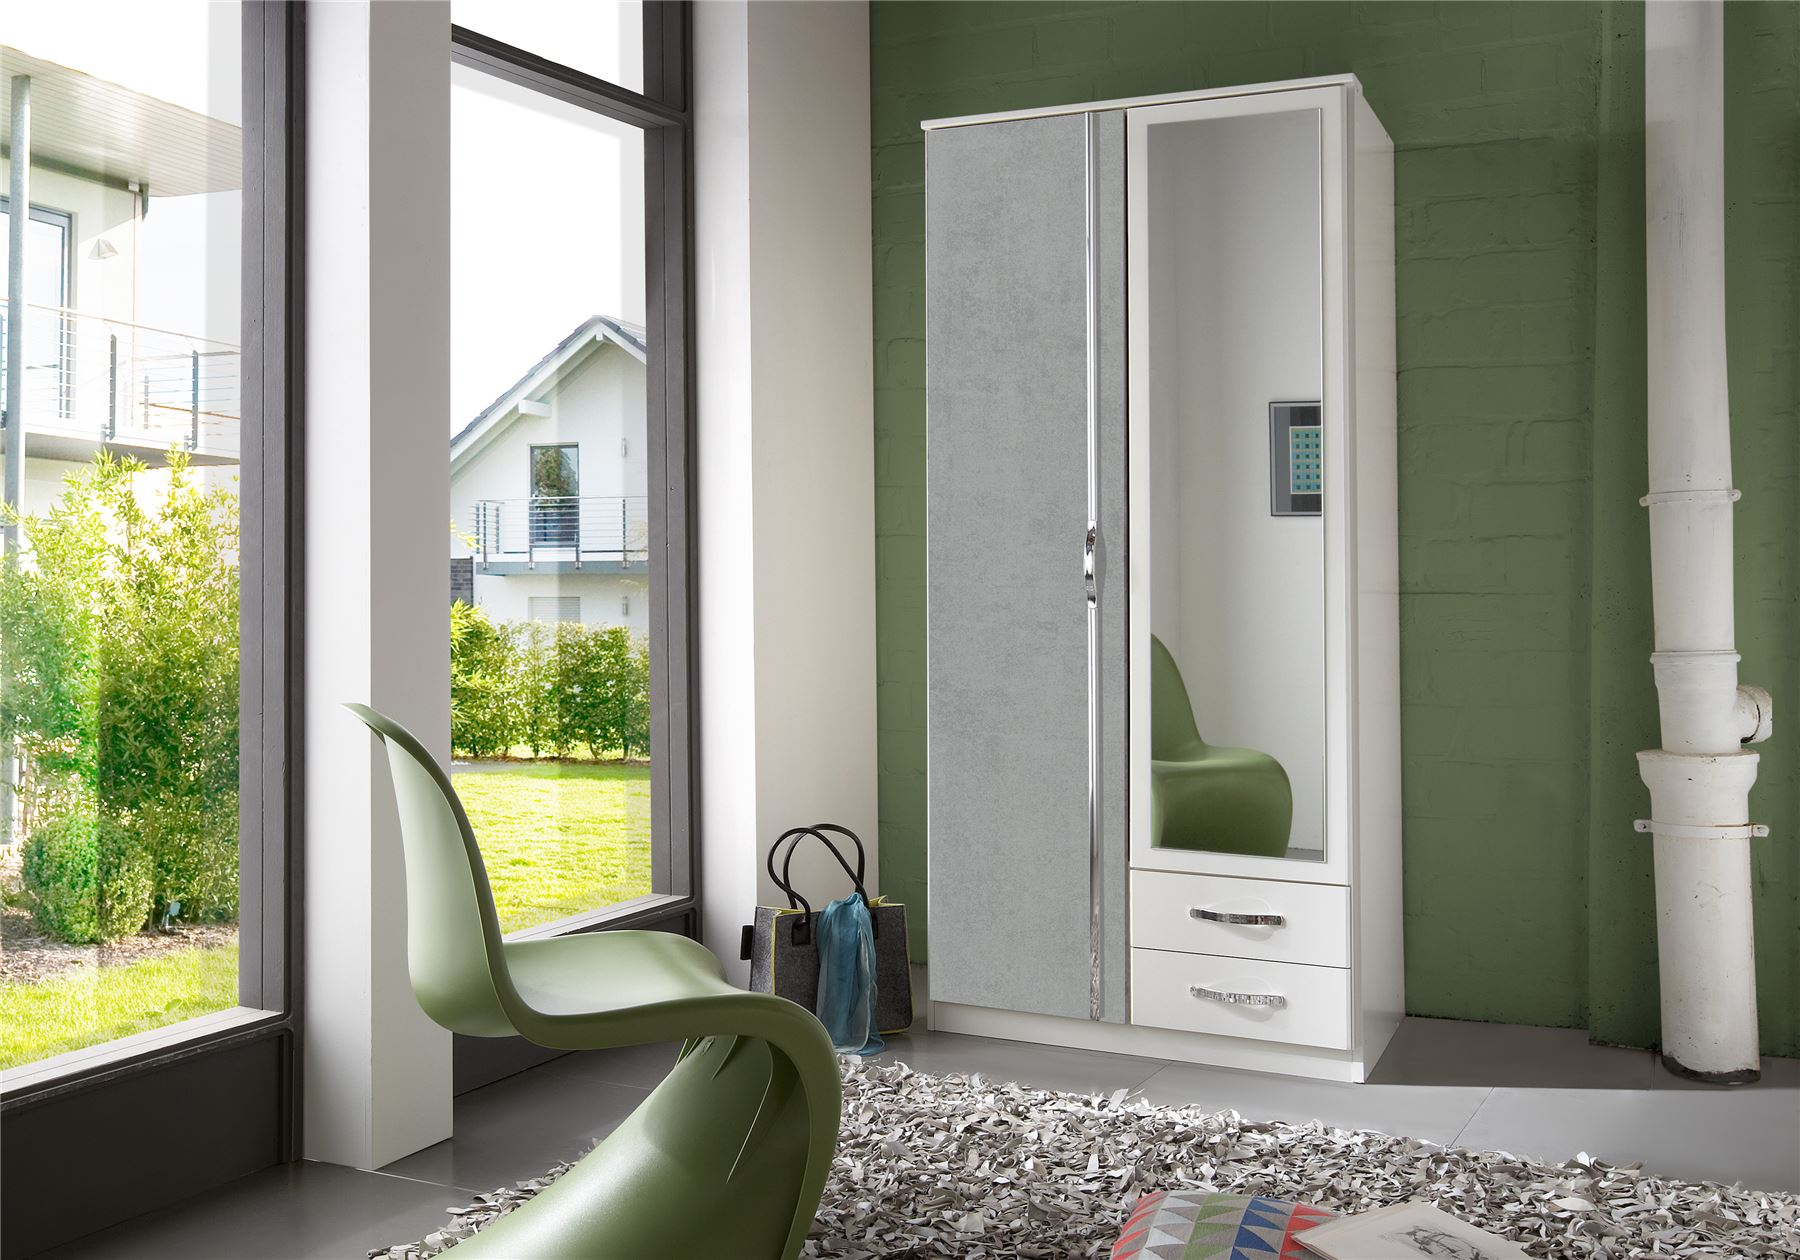 German Duo Concrete Grey & White 2 Door 90cm Wardrobe with Mirror & Drawers